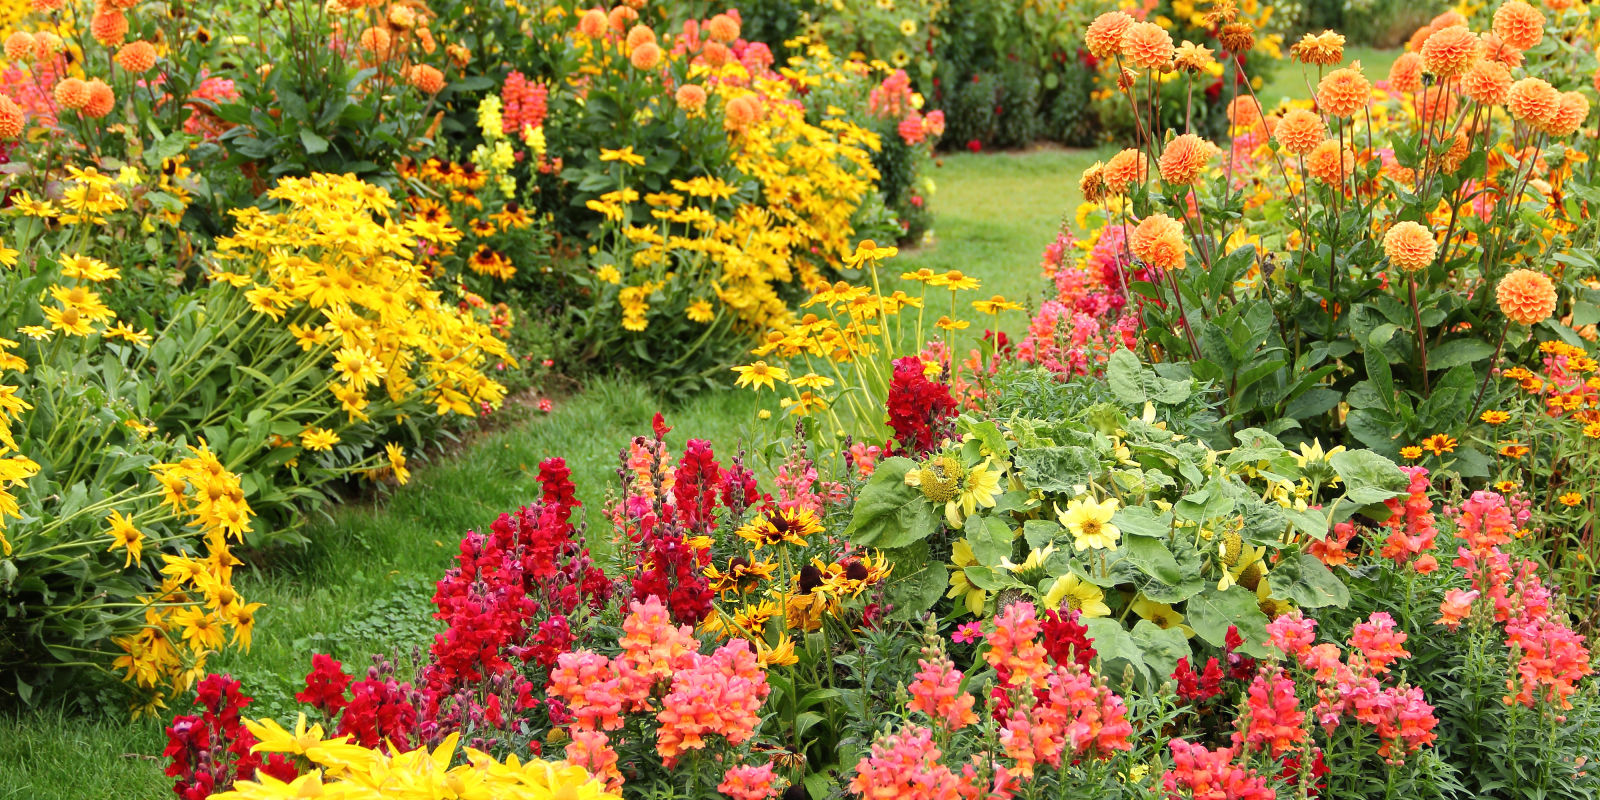 25 best fall flowers plants flowers that bloom in autumn for Landscape flowers and plants